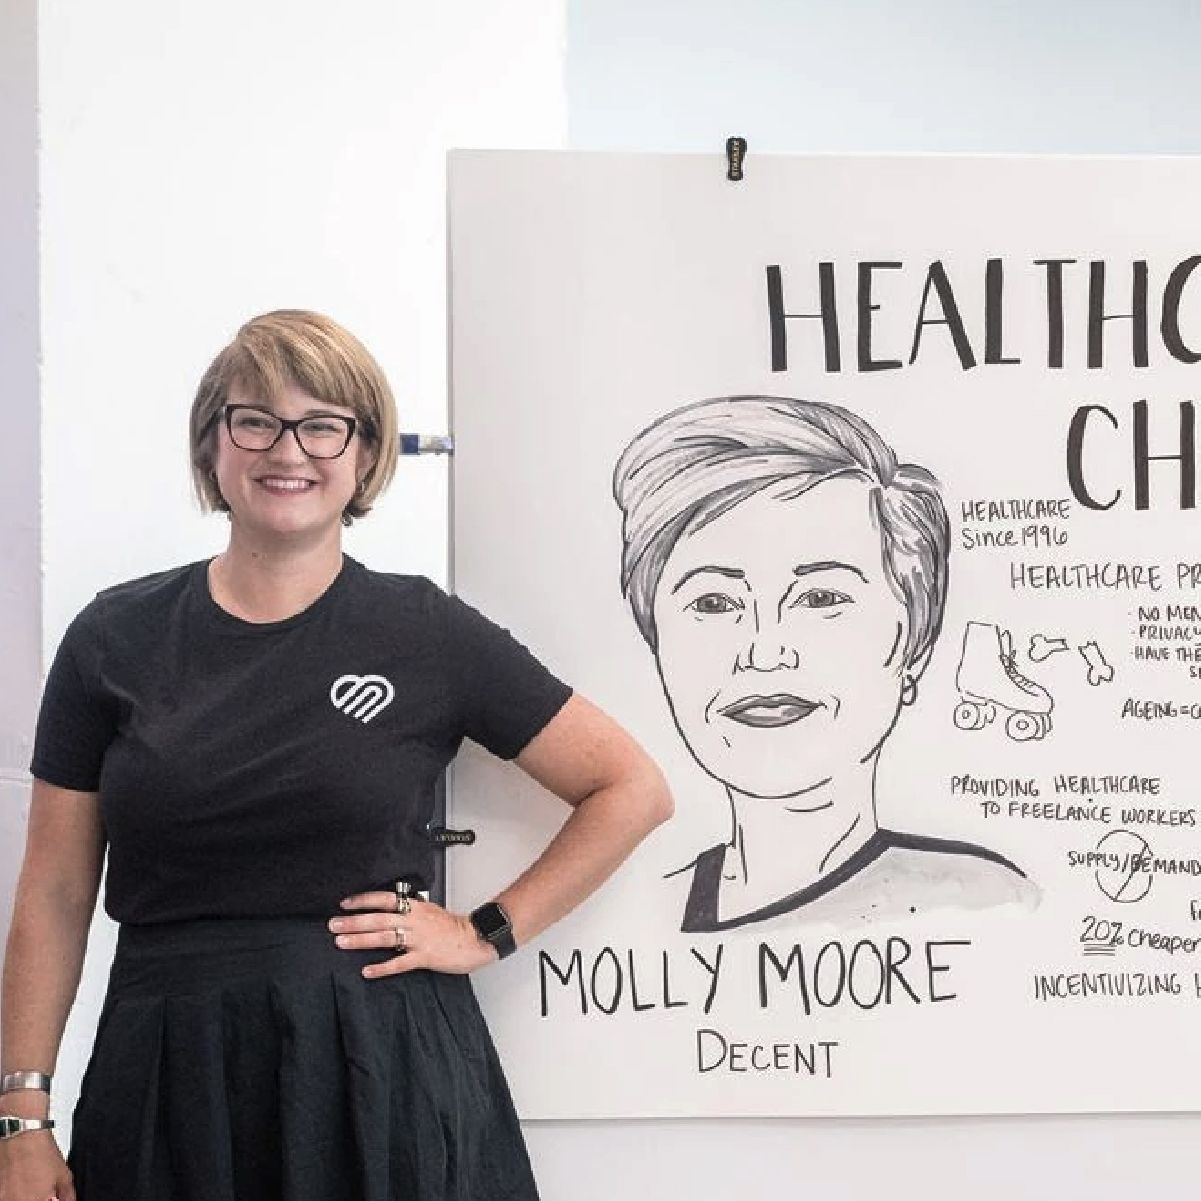 See what our Head of Insurance, Molly Moore had to say at the HealthTech Austin event